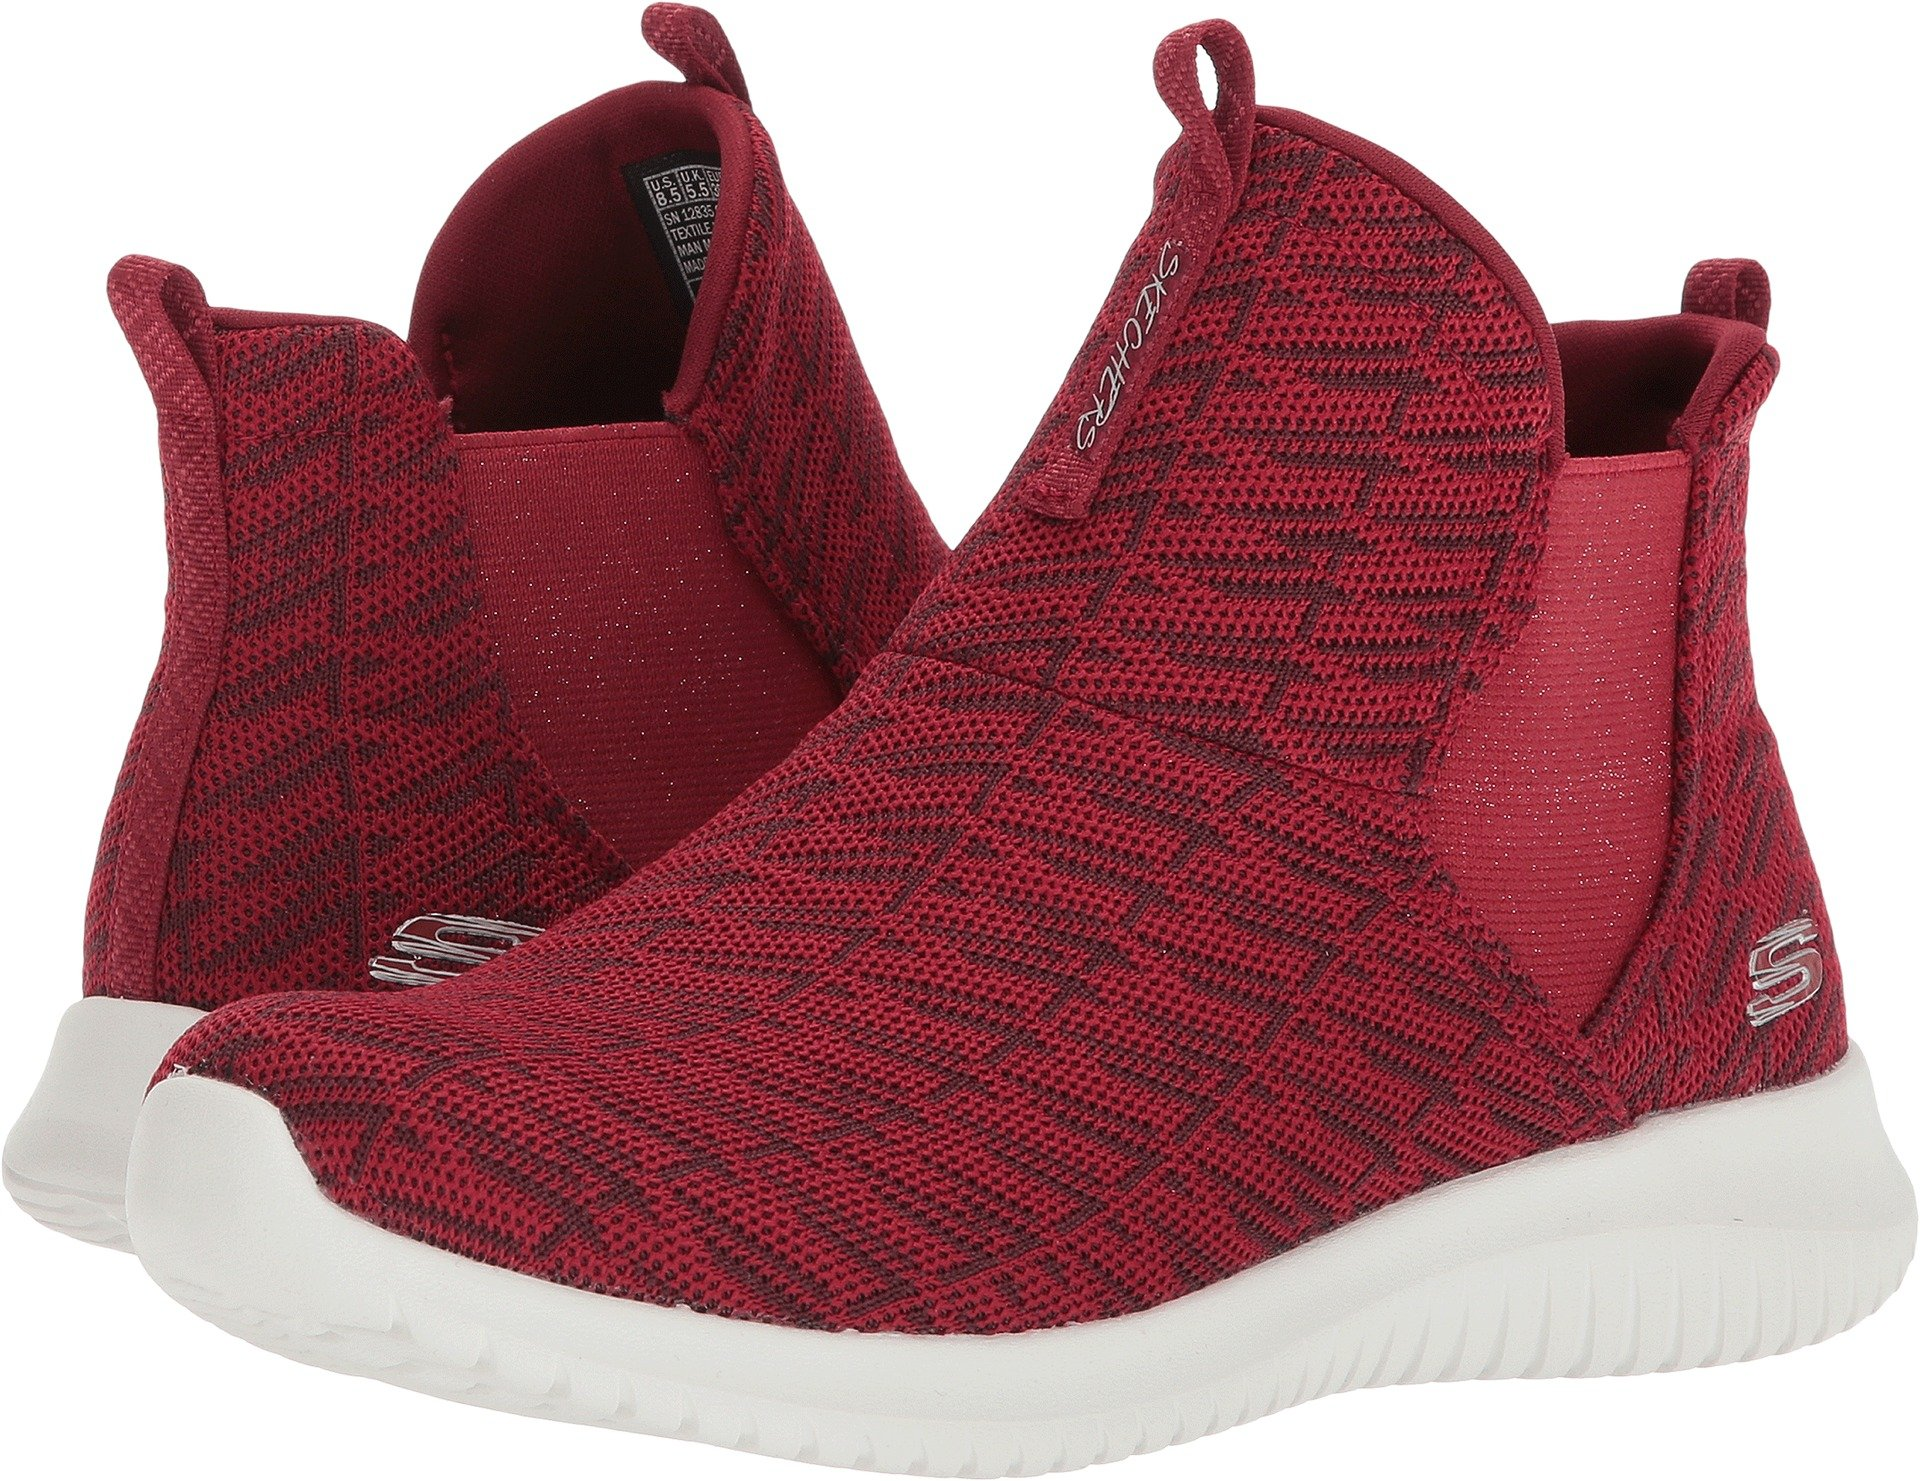 Skechers Women's Ultra Flex High Rise Pull On Fashion Sneaker Shoes Red Size 8.5 by Skechers (Image #1)